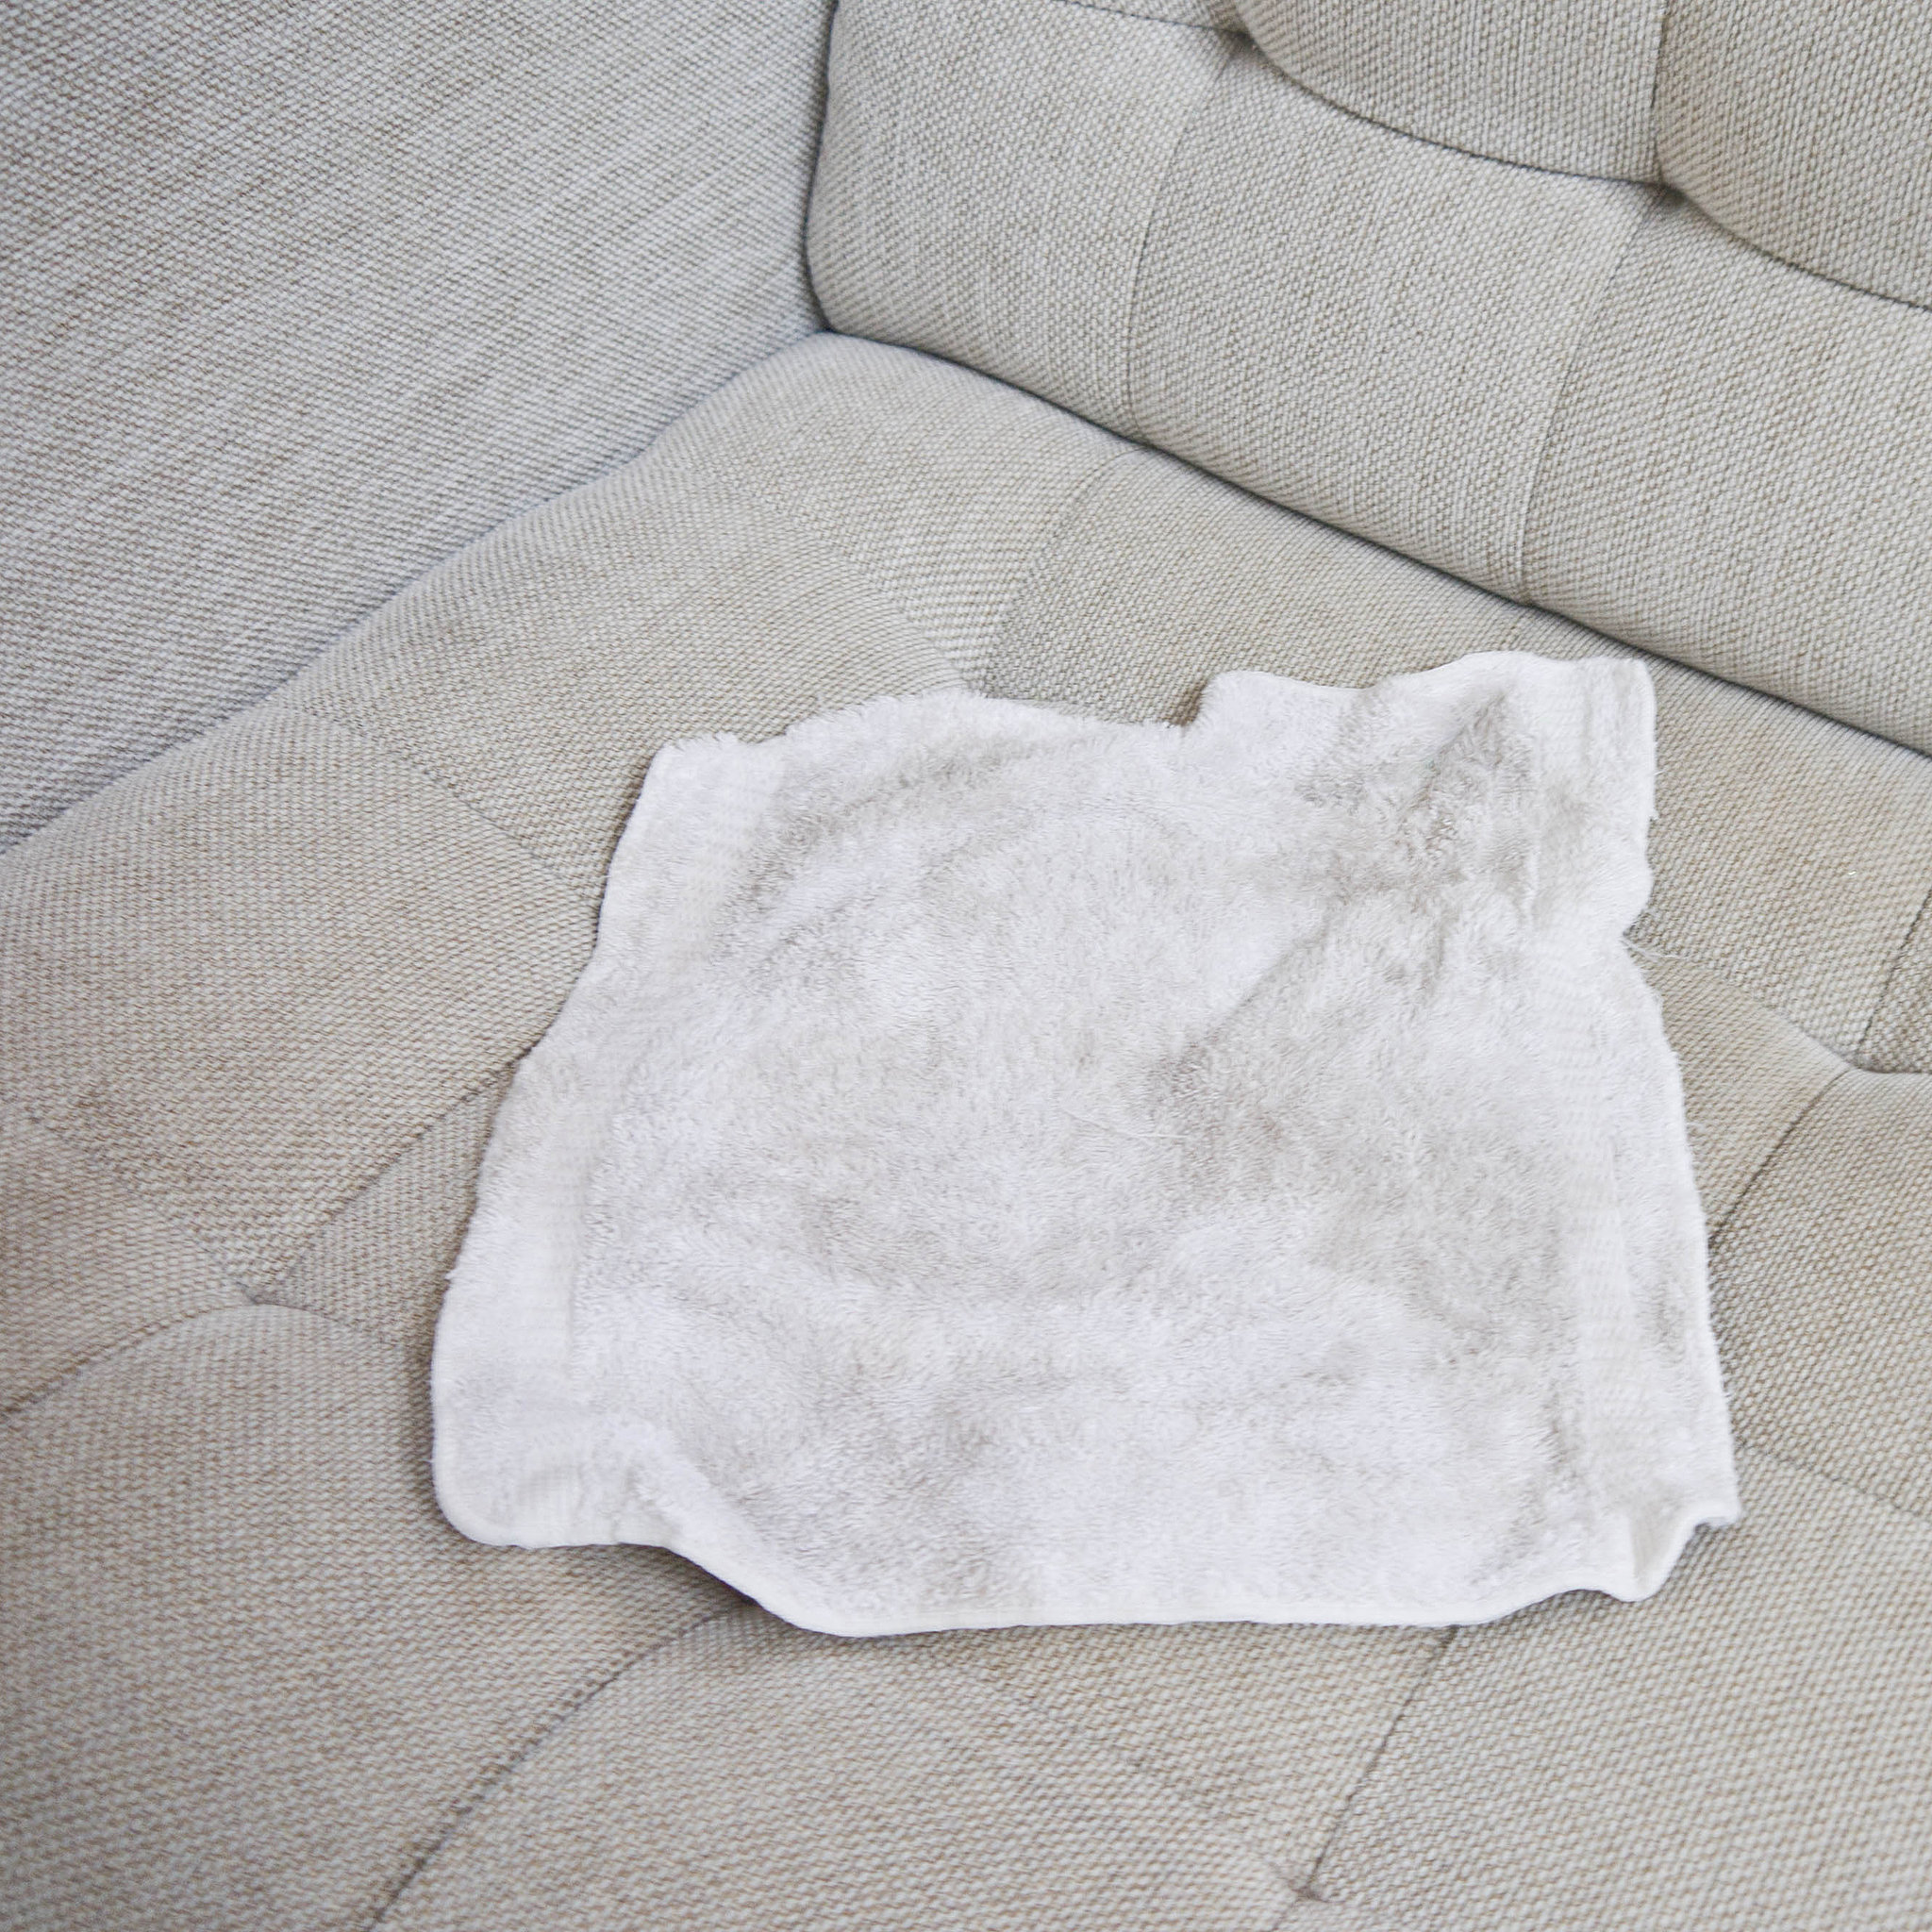 best fabric cleaner for furniture. Stains, Begone Best Fabric Cleaner For Furniture